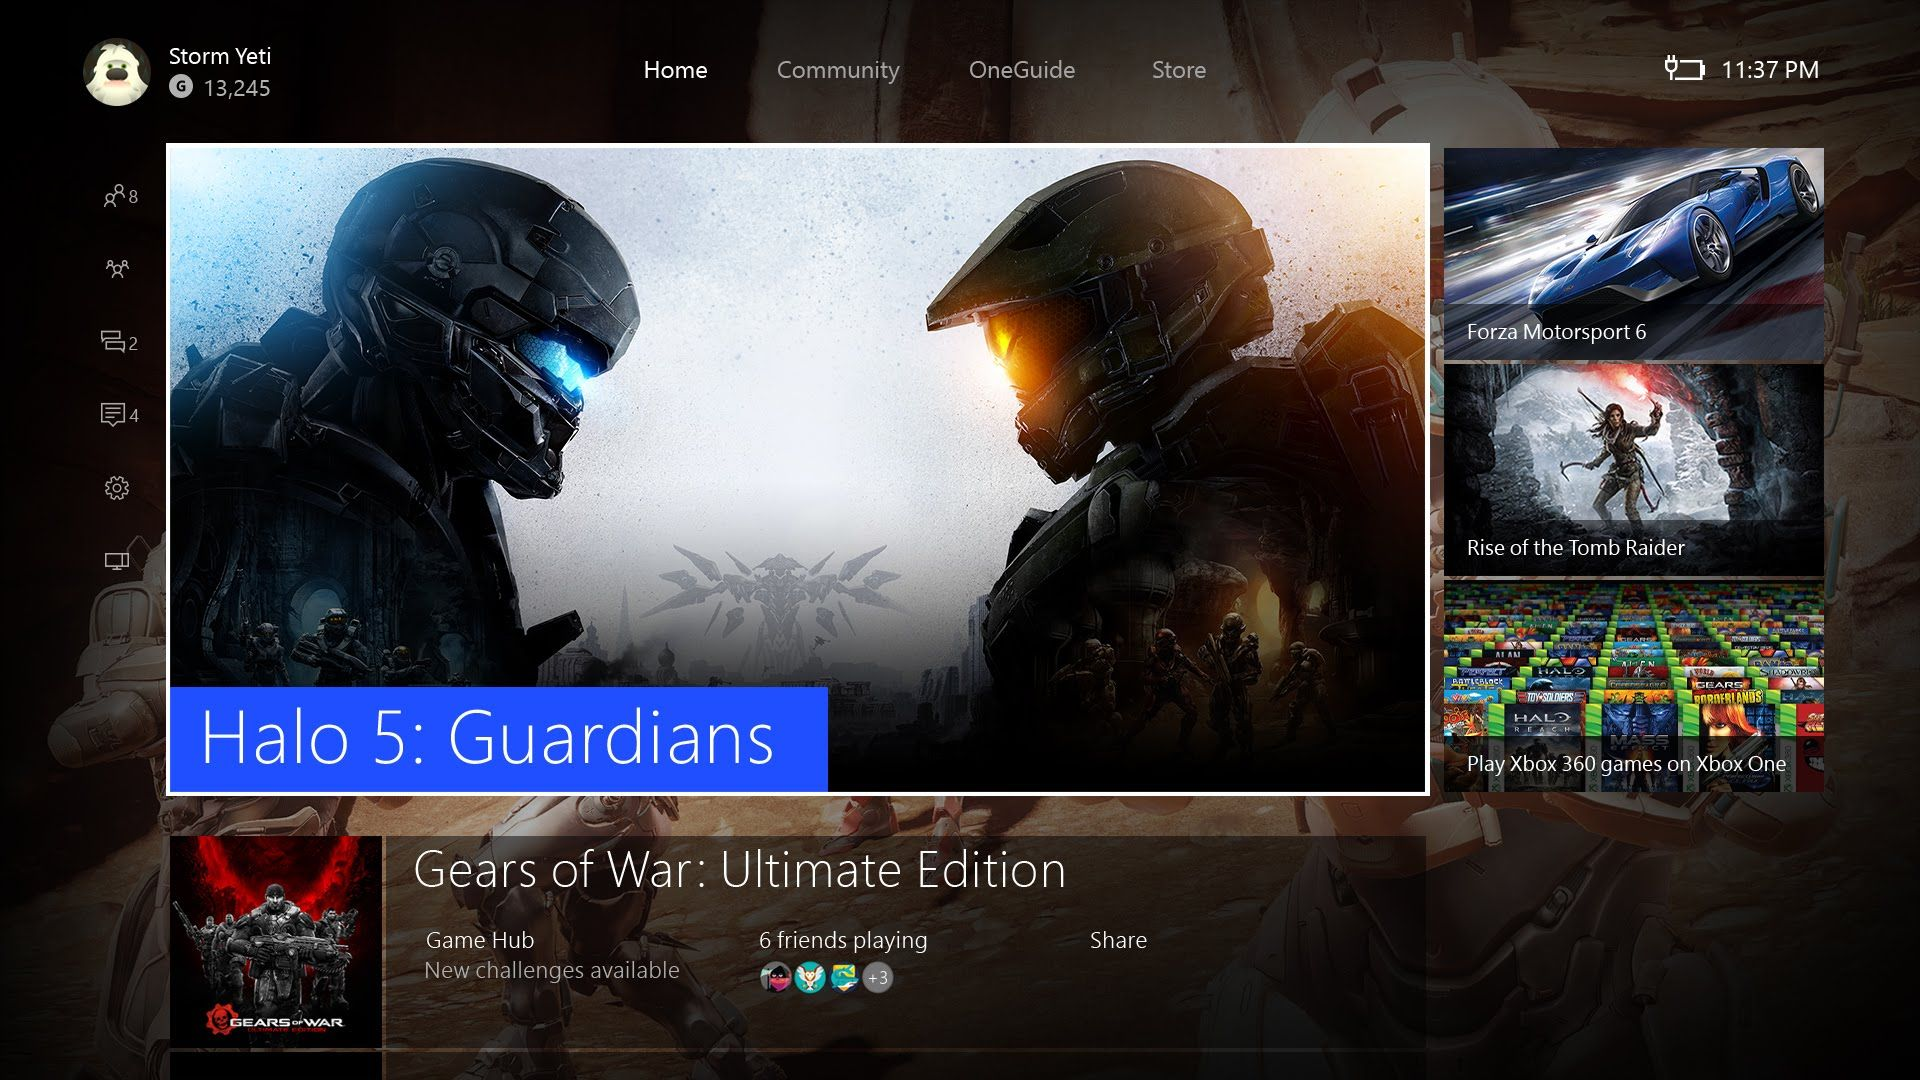 Xbox One Dashboard redesign: Faster performance new Content Blocks